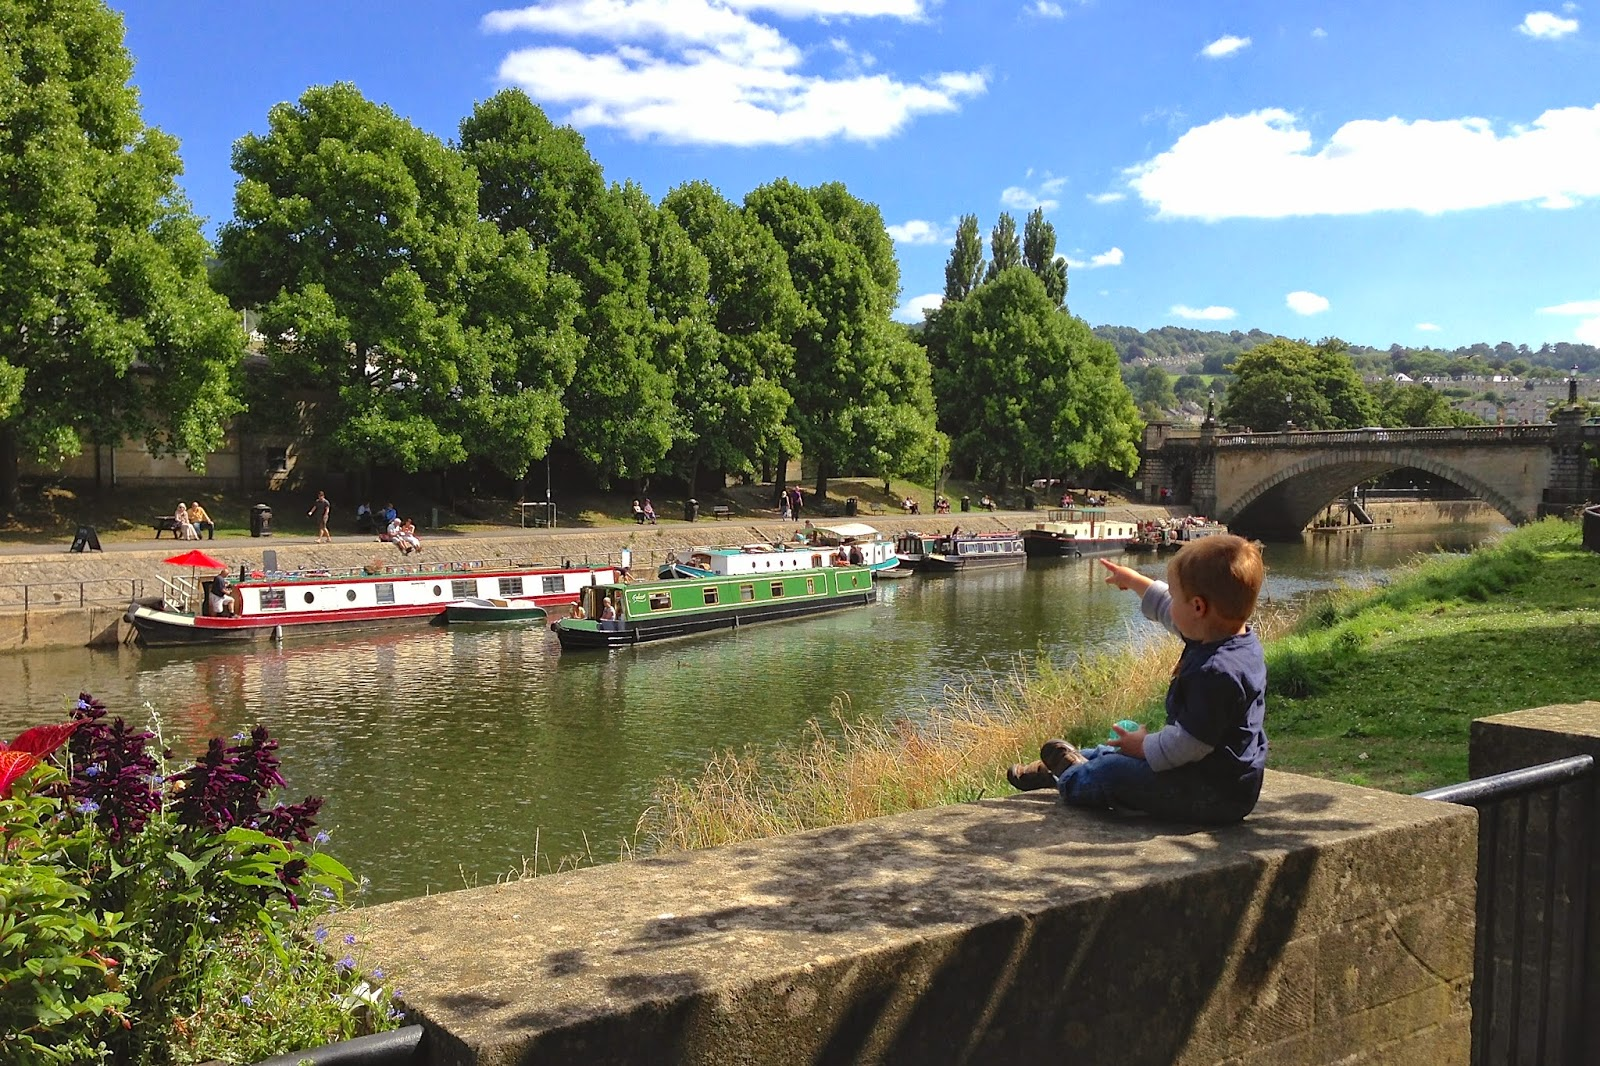 River and canal boats in Bath